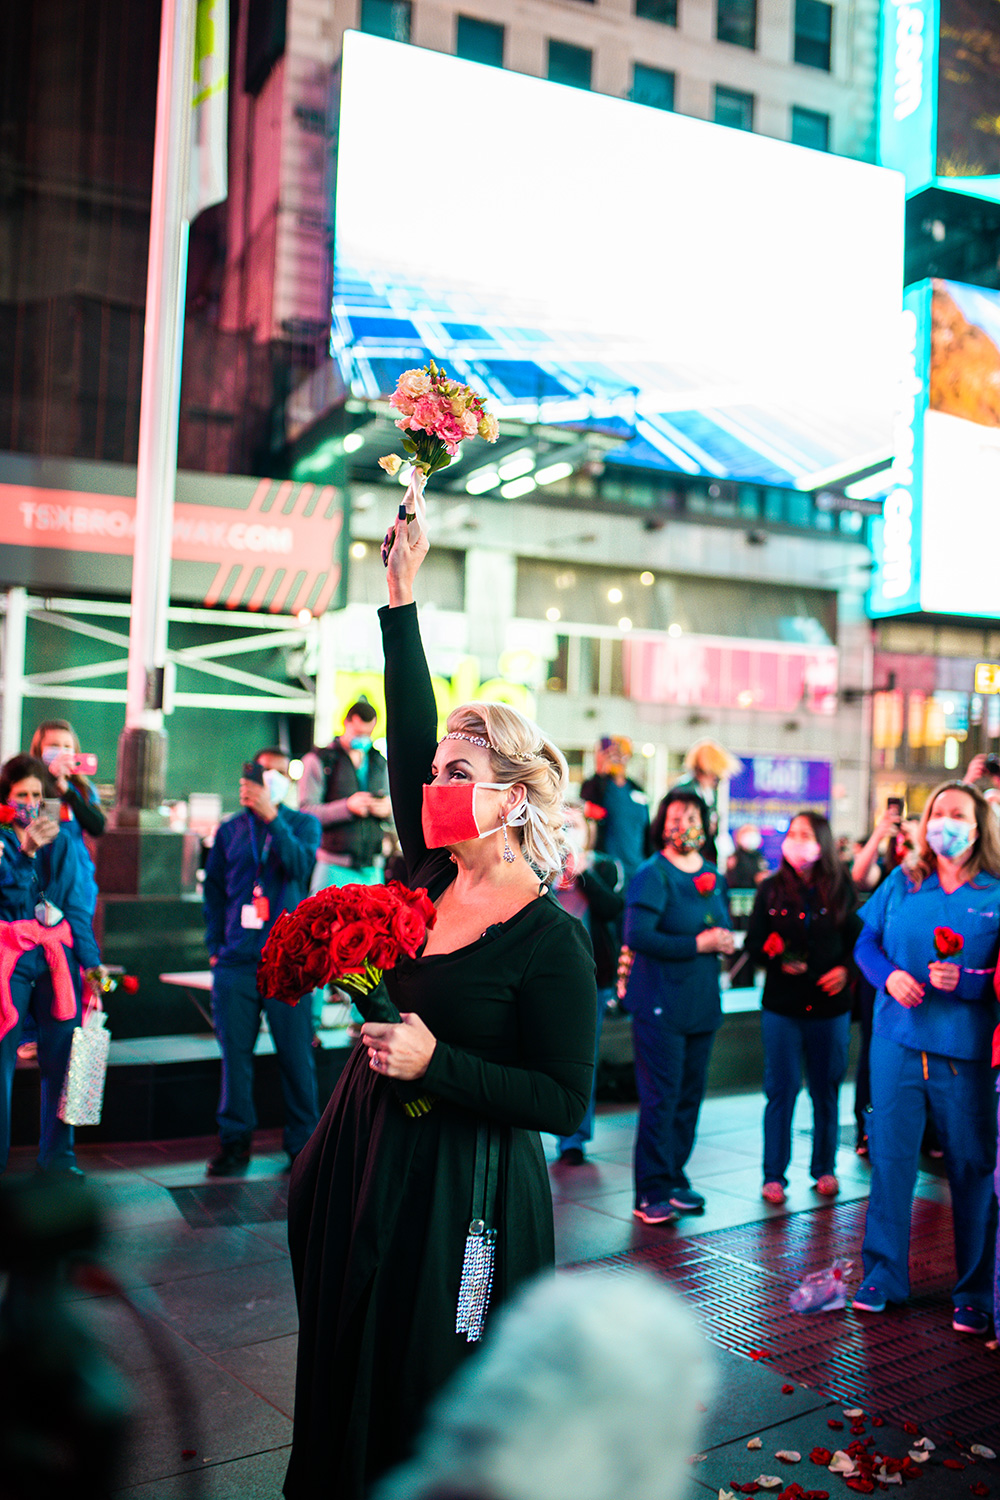 Nurse Gets Married in Times Square After Moving to NYC to Help With Coronavirus